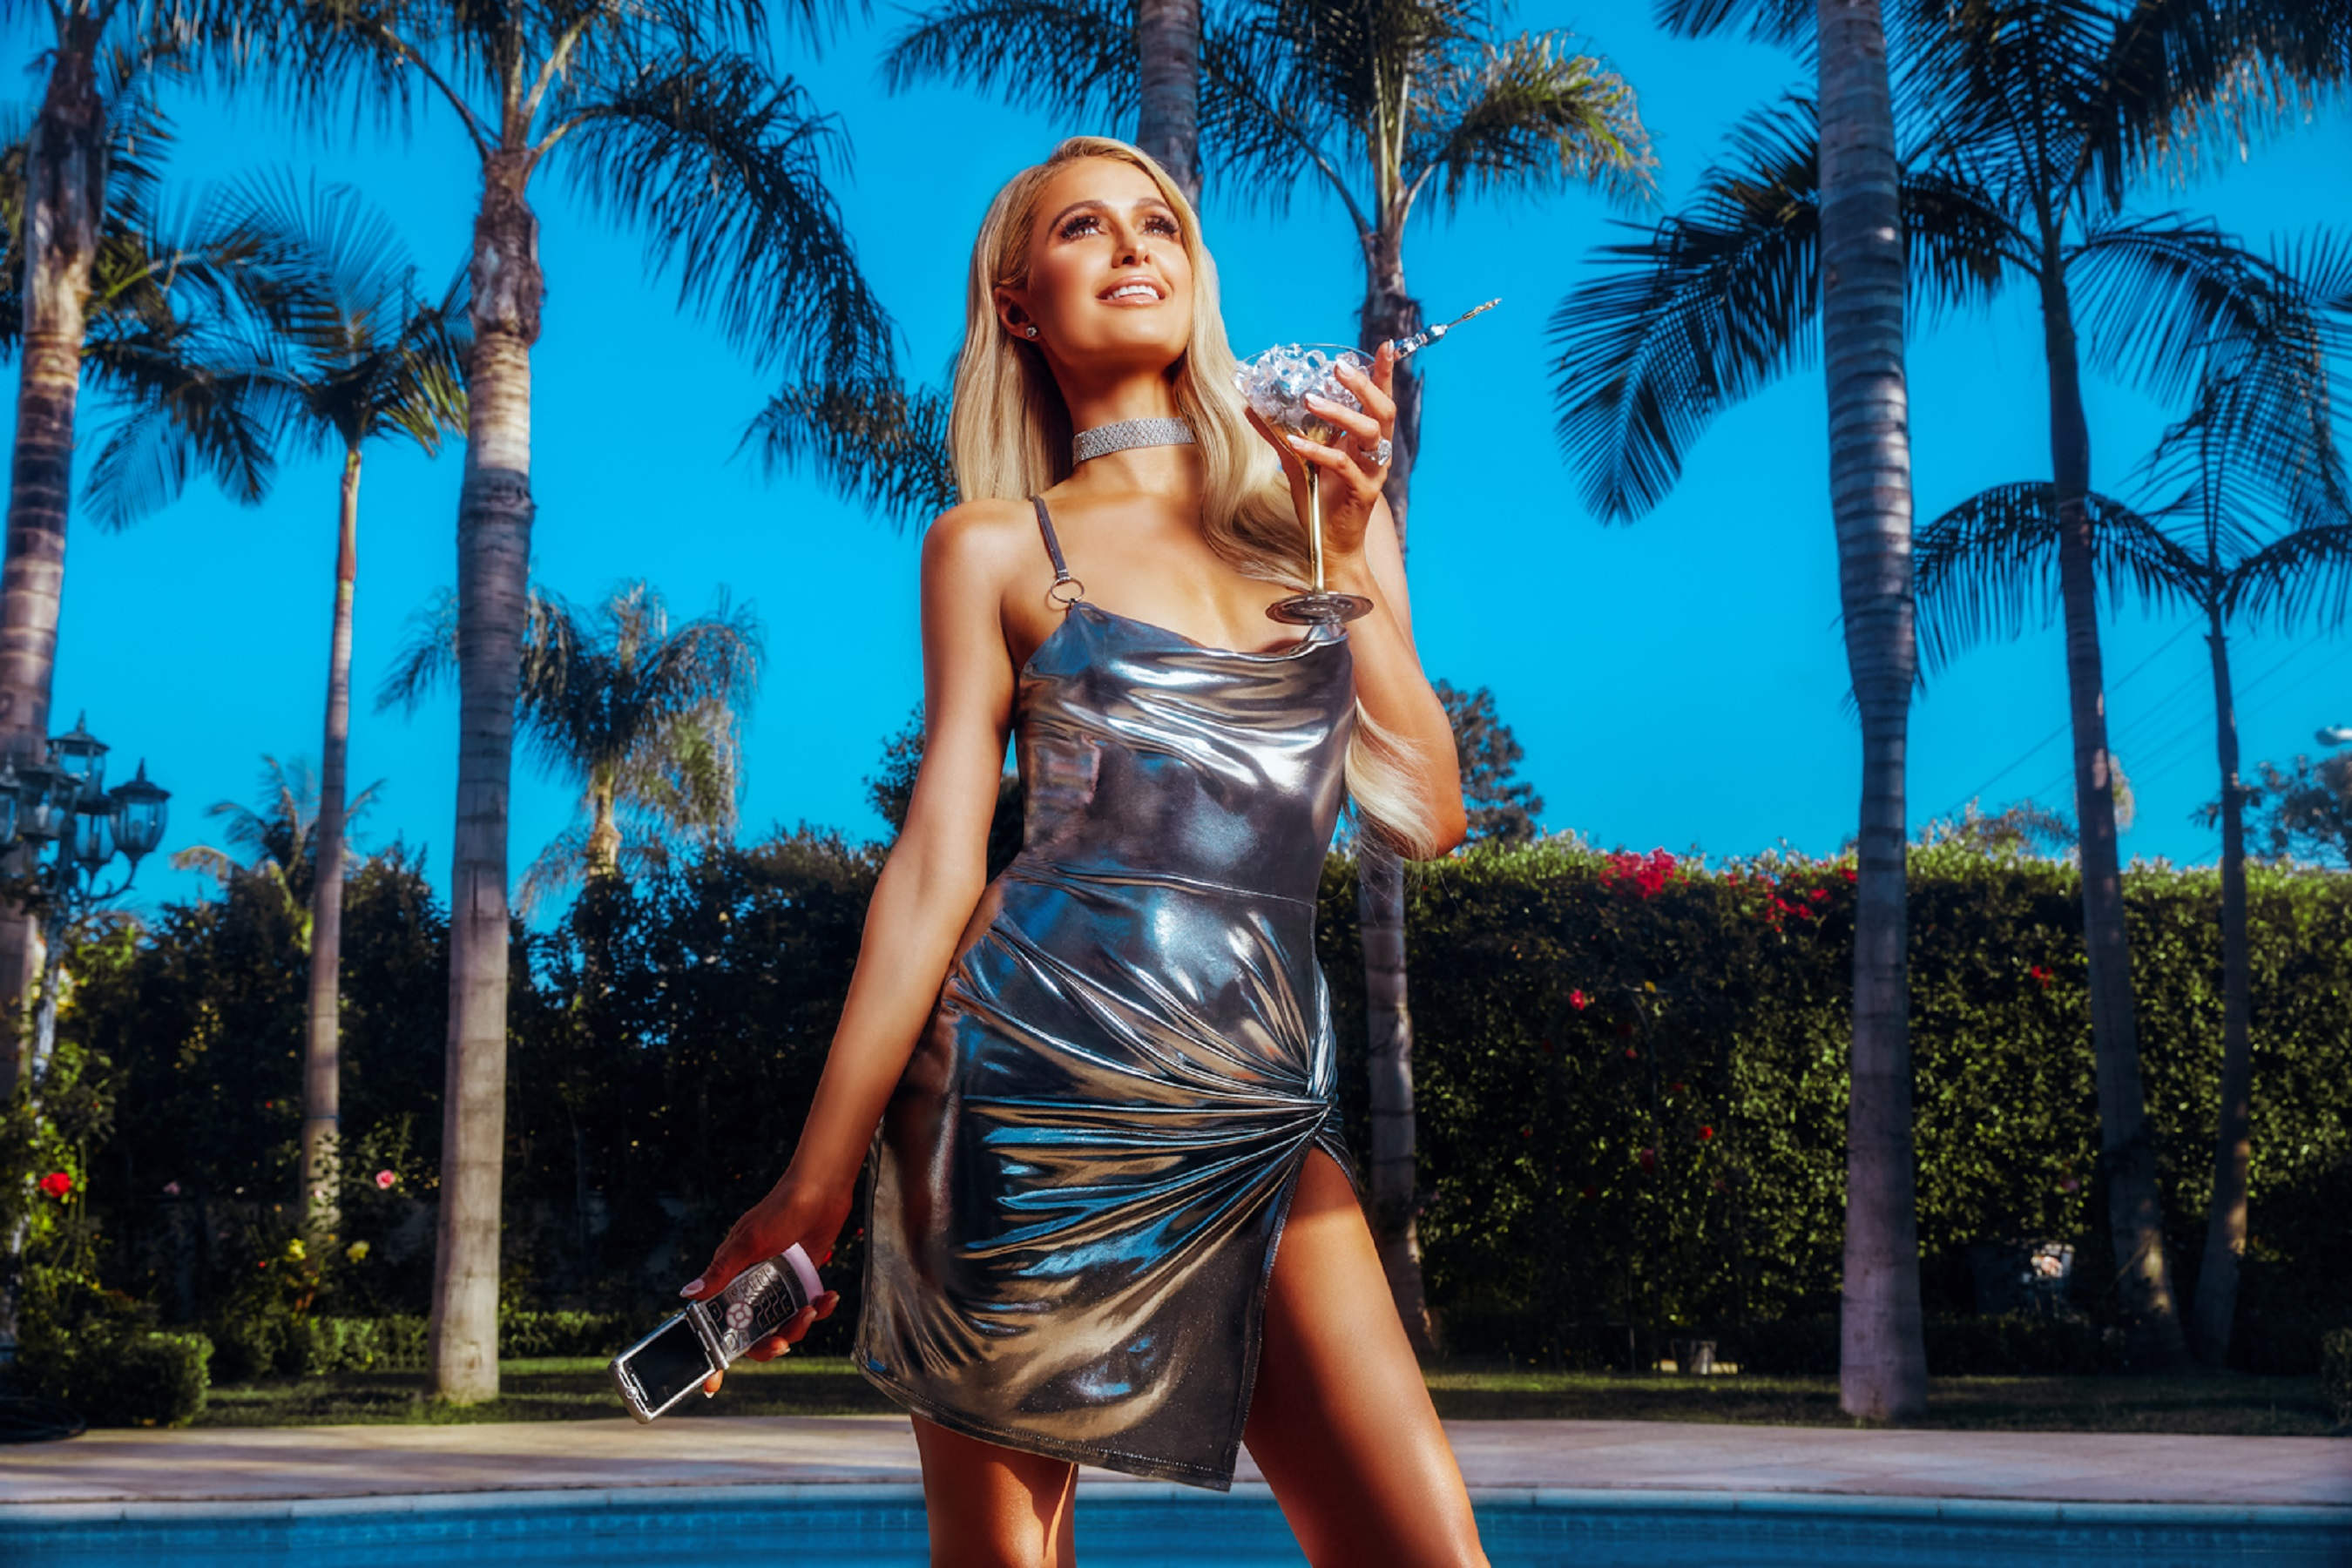 Boohoo Com X Paris Hilton New Collaboration: PICS: Paris Hilton Reveals Her Design Collaboration With